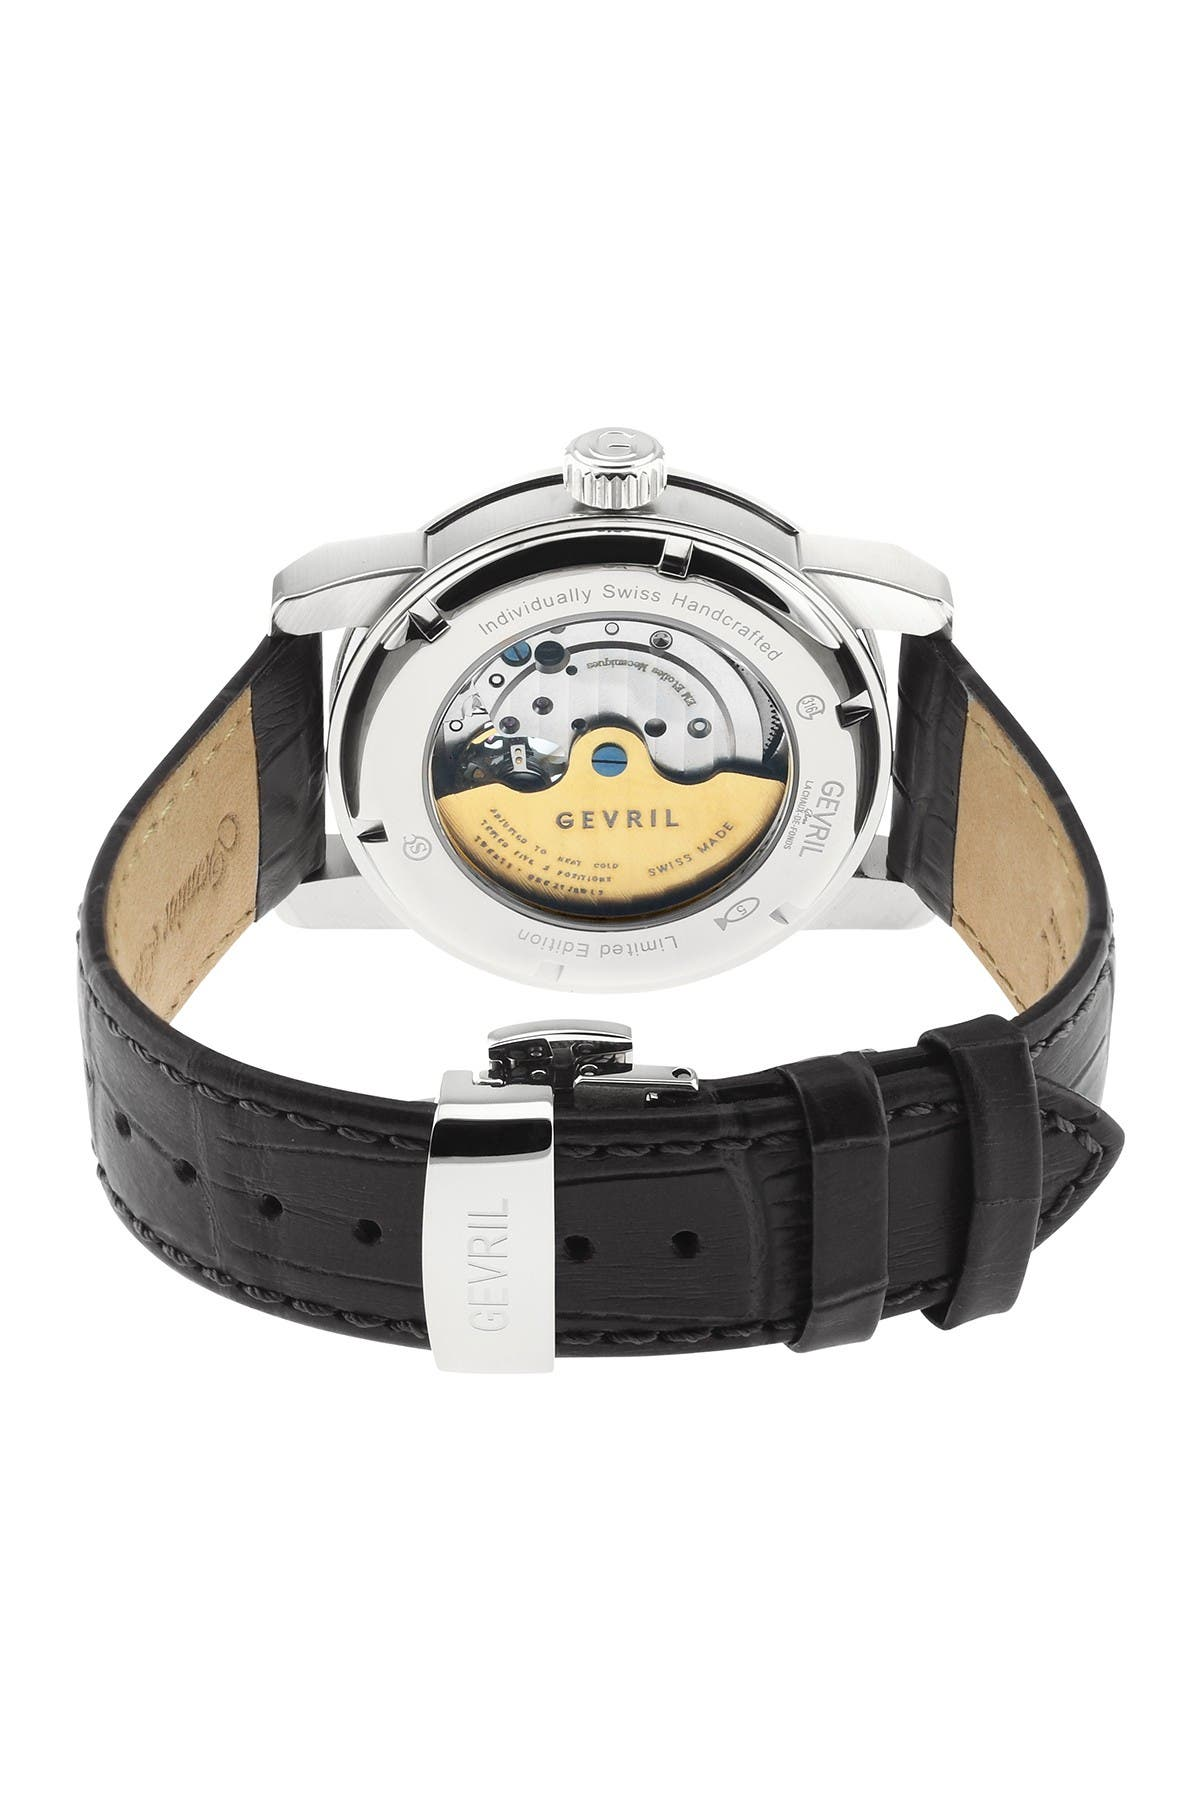 Image of Gevril Men's Madison Stainless Steel Silver Dial Black Leather Watch, 39mm